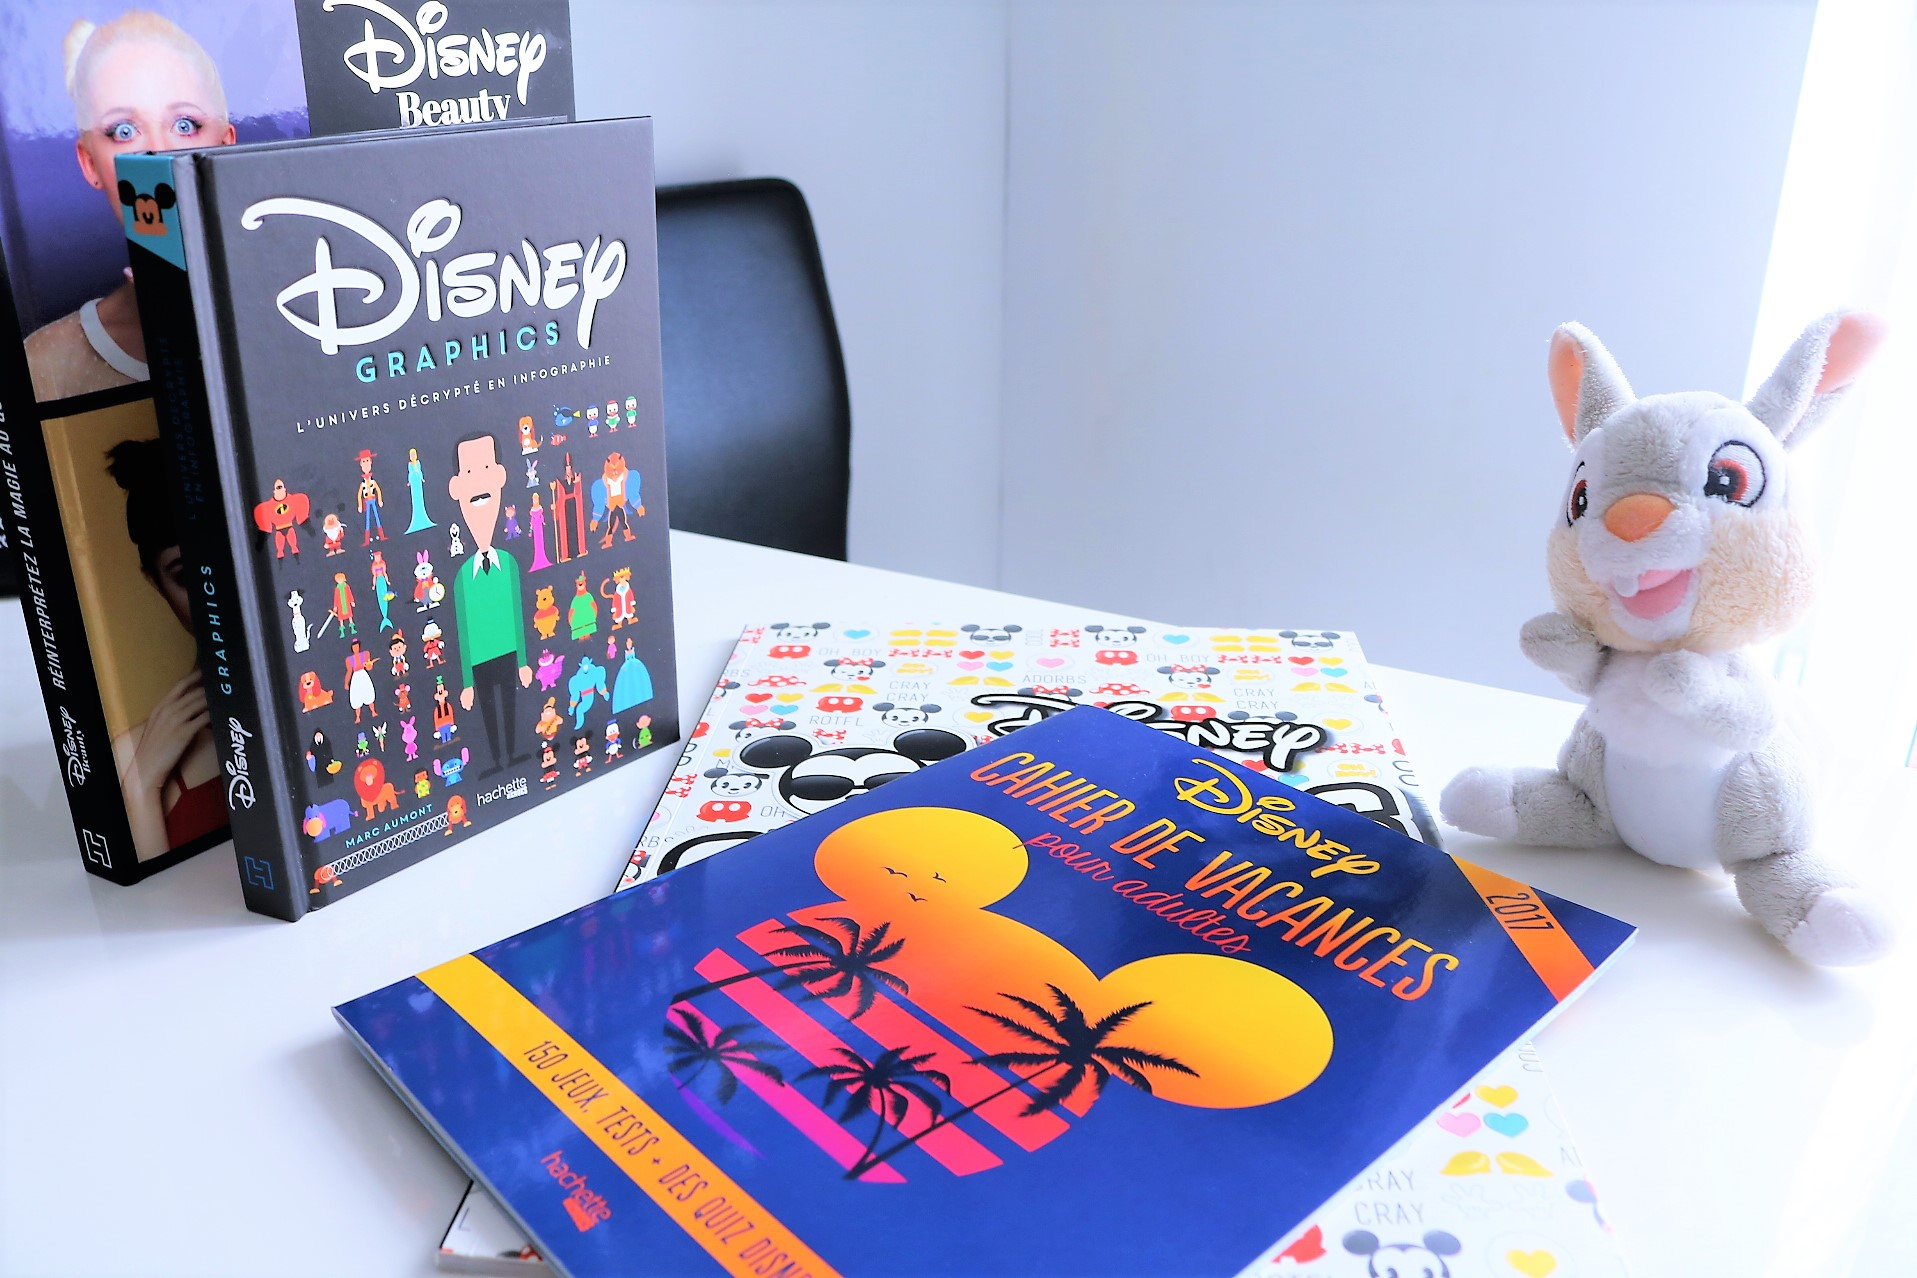 livres disney les disney book de hachette heroes happ 39 ines. Black Bedroom Furniture Sets. Home Design Ideas